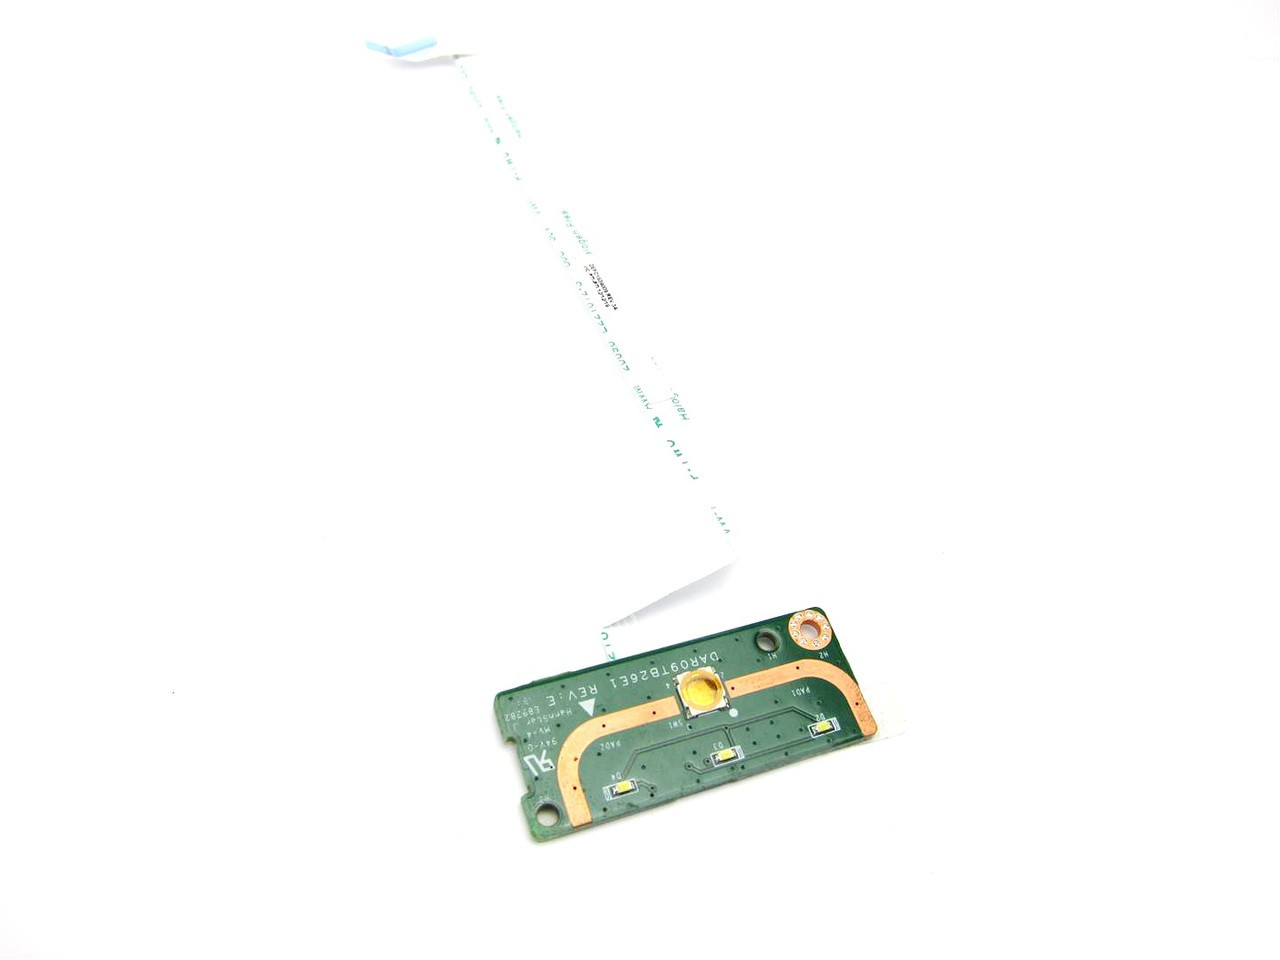 Dell Inspiron 5720 7720 Power Button Board W/ Cable - DAR09TB26E1